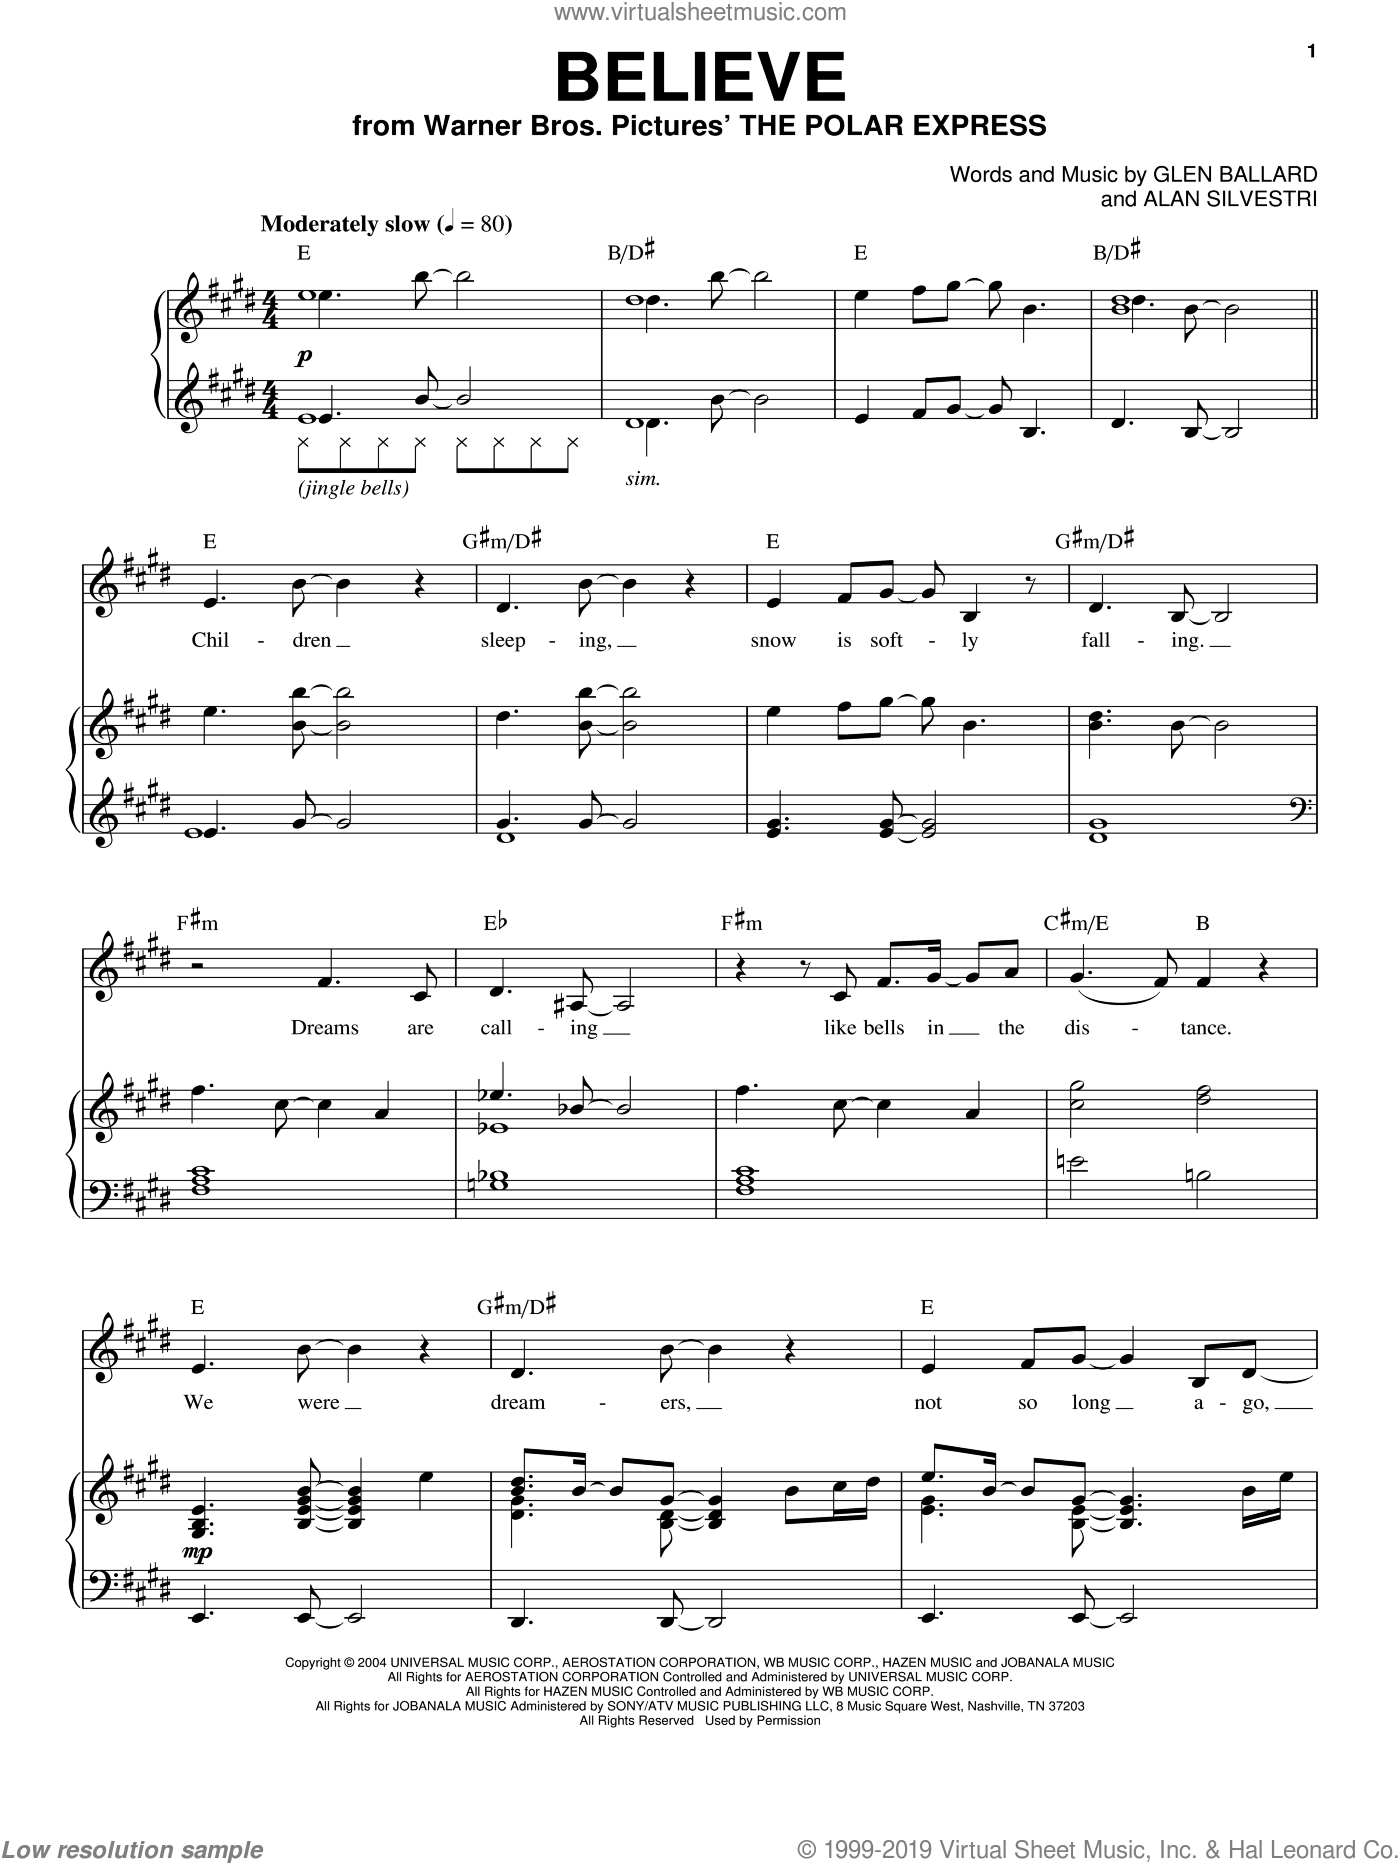 Believe sheet music for voice and piano by Josh Groban, Alan Silvestri and Glen Ballard, intermediate skill level